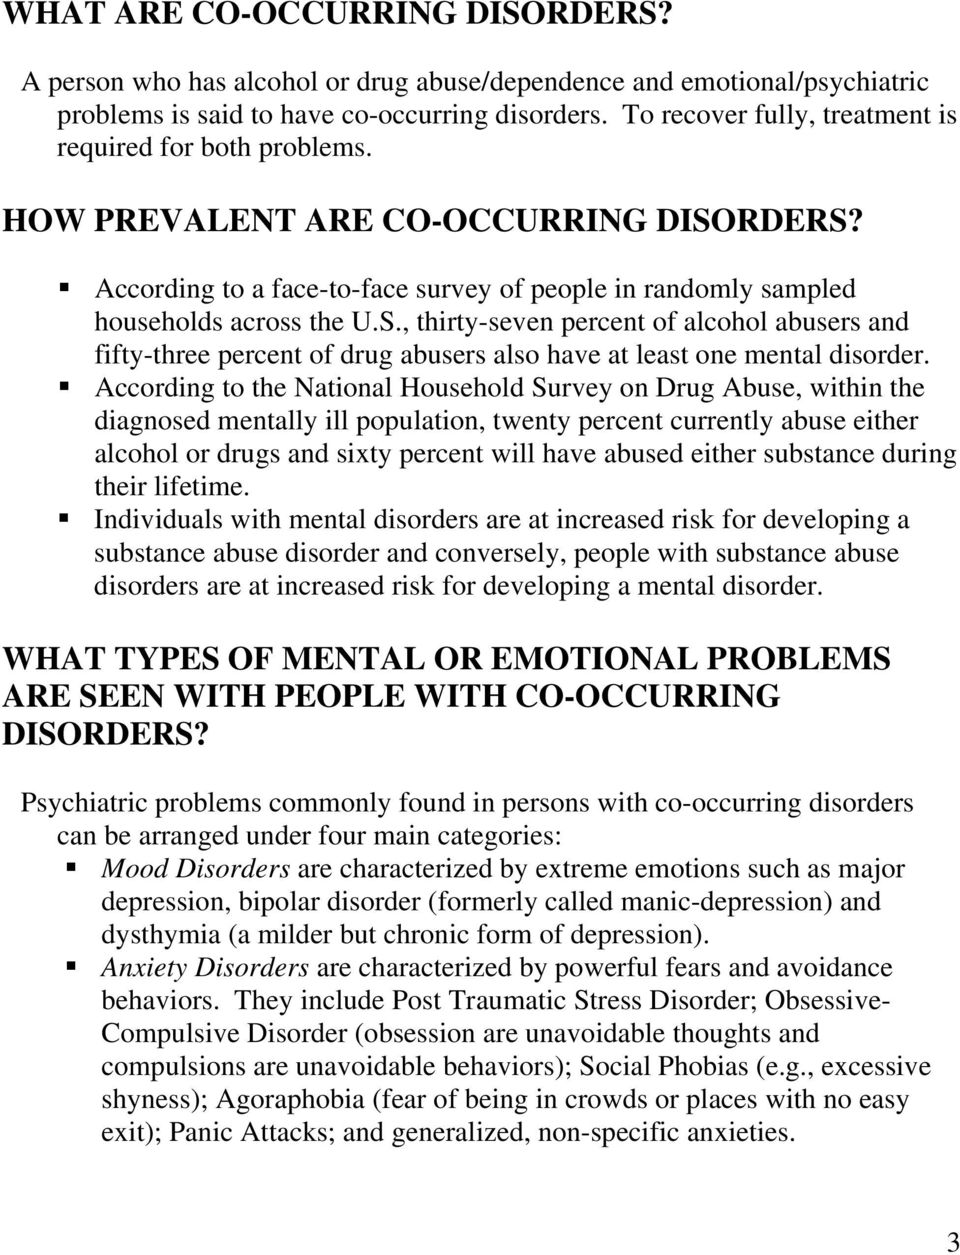 RDERS? According to a face-to-face survey of people in randomly sampled households across the U.S., thirty-seven percent of alcohol abusers and fifty-three percent of drug abusers also have at least one mental disorder.